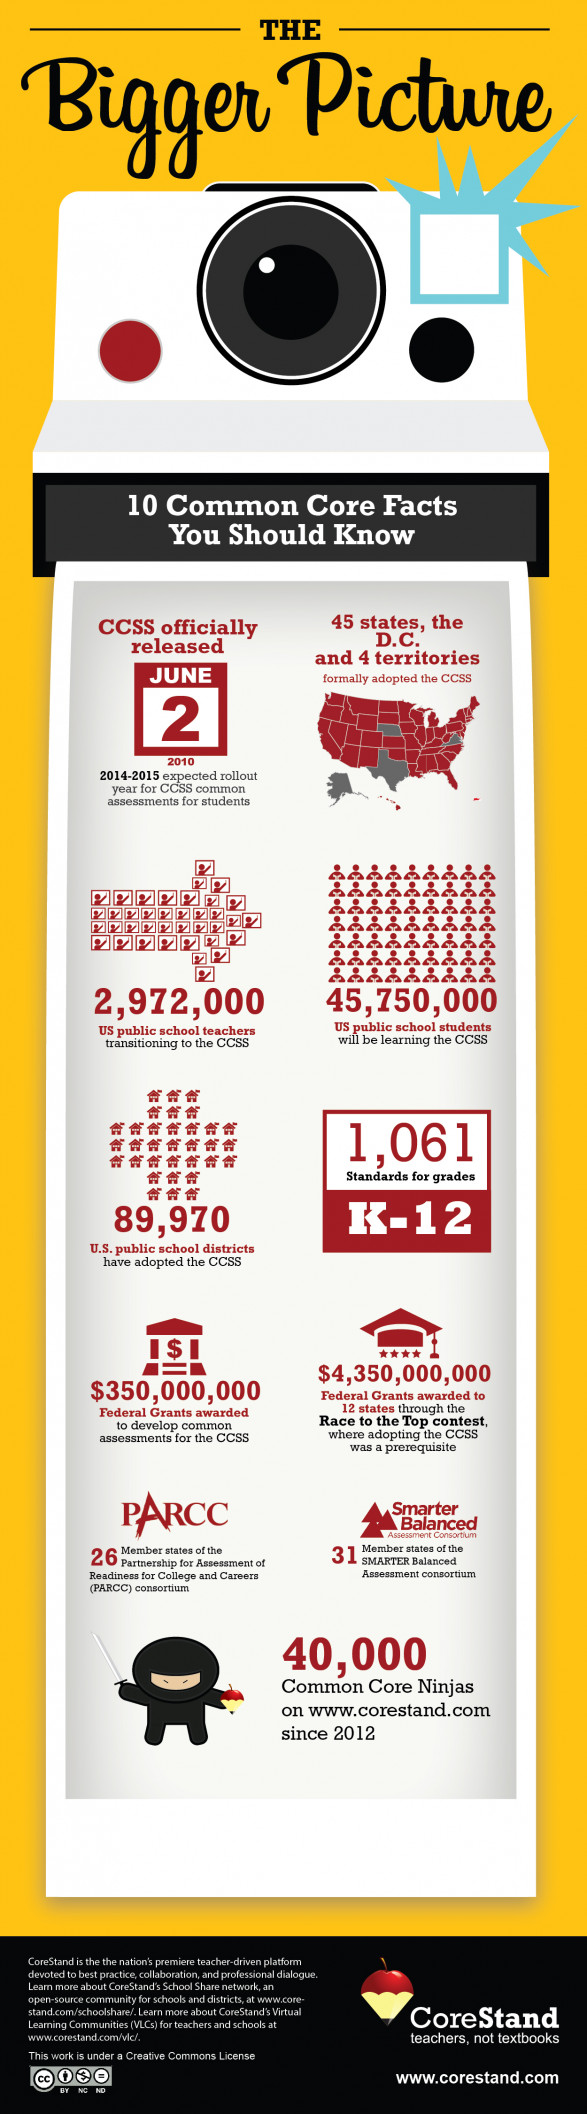 The Bigger Picture: 10 Common Core Facts You Should Know